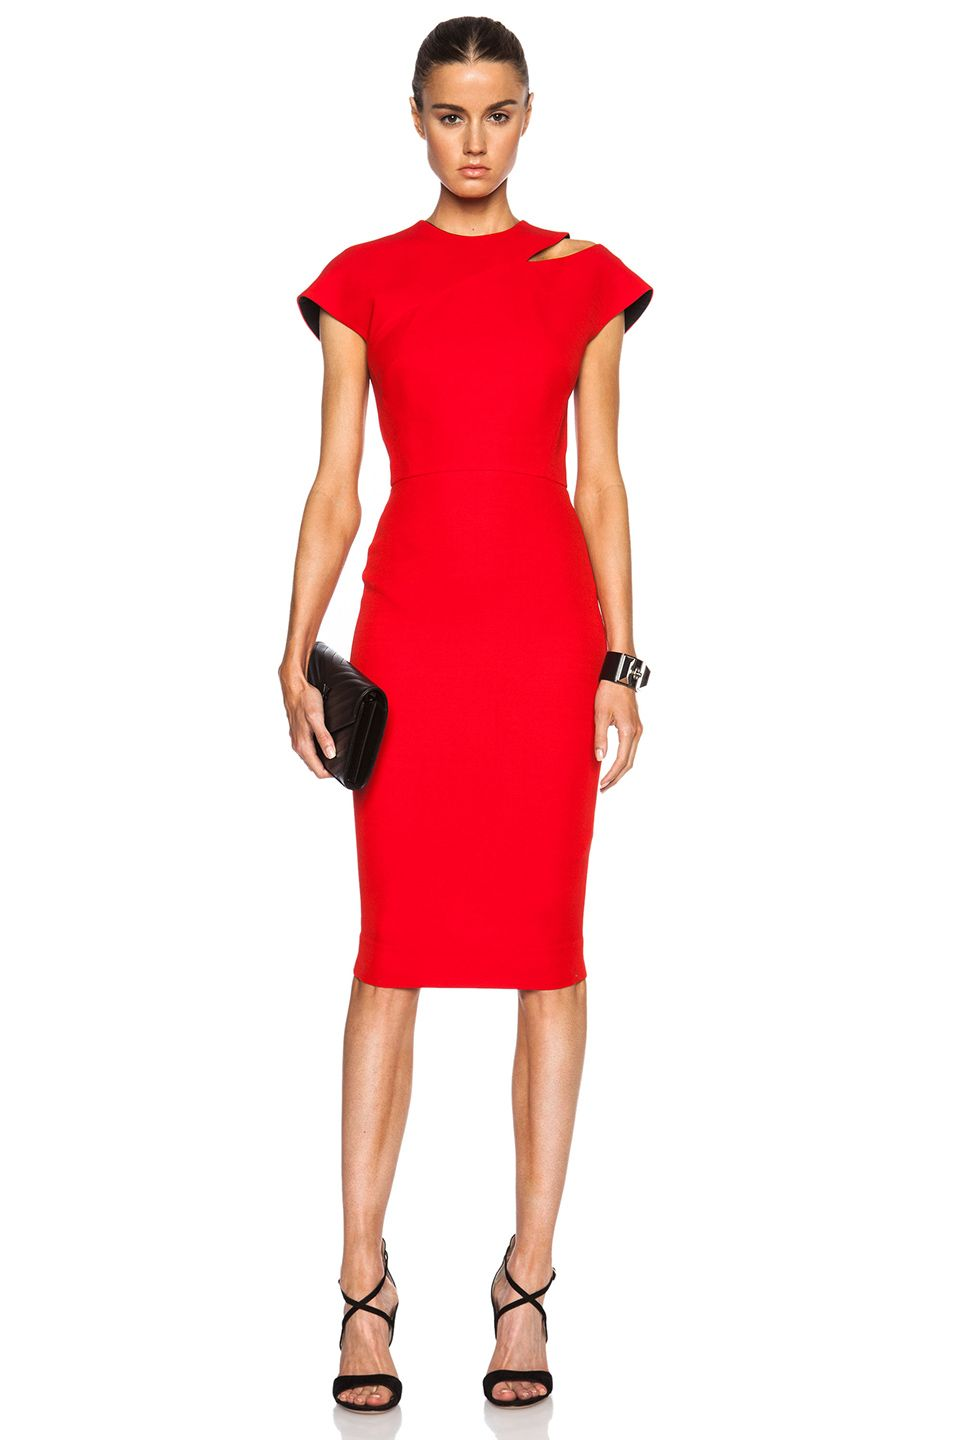 Victoria beckham cap sleeve cut out dress in red the influencers